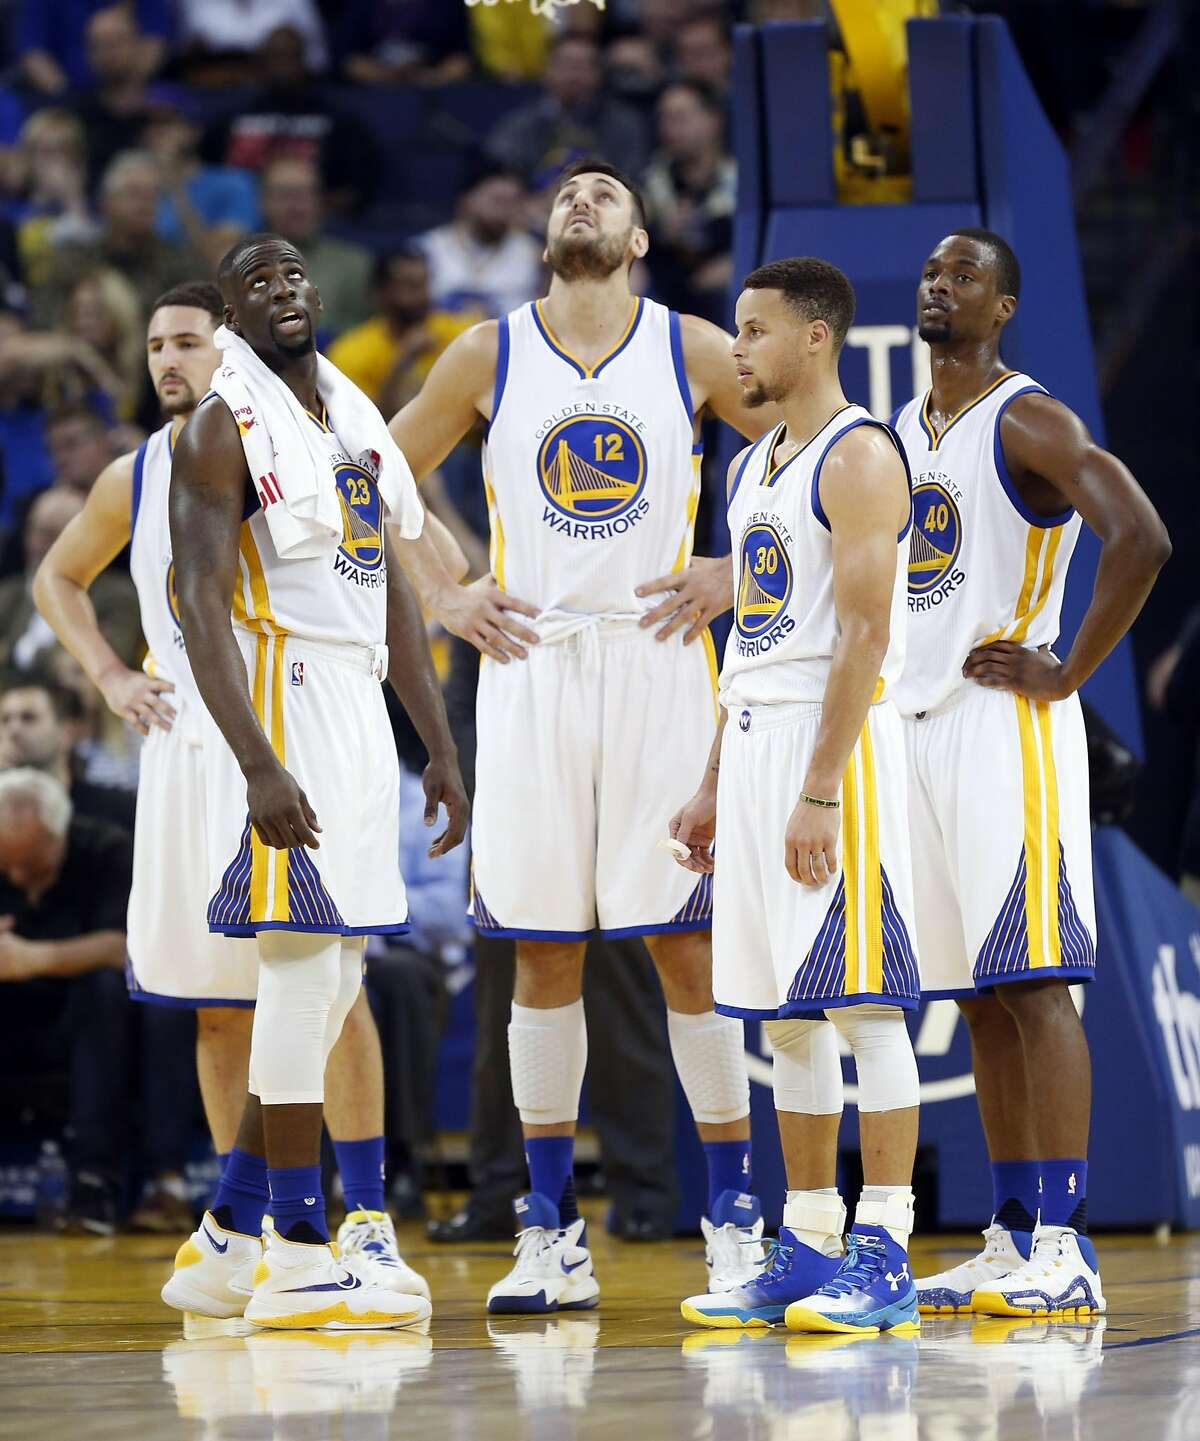 Golden State Warriors' Klay Thompson, Draymond Green, Andrew Bogut, Stephen Curry and Harrison Barnes wait out a video replay during Warriors' 115-94 win over Utah Jazz during NBA game at Oracle Arena in Oakland, Calif., on Wednesday, March 9, 2016.